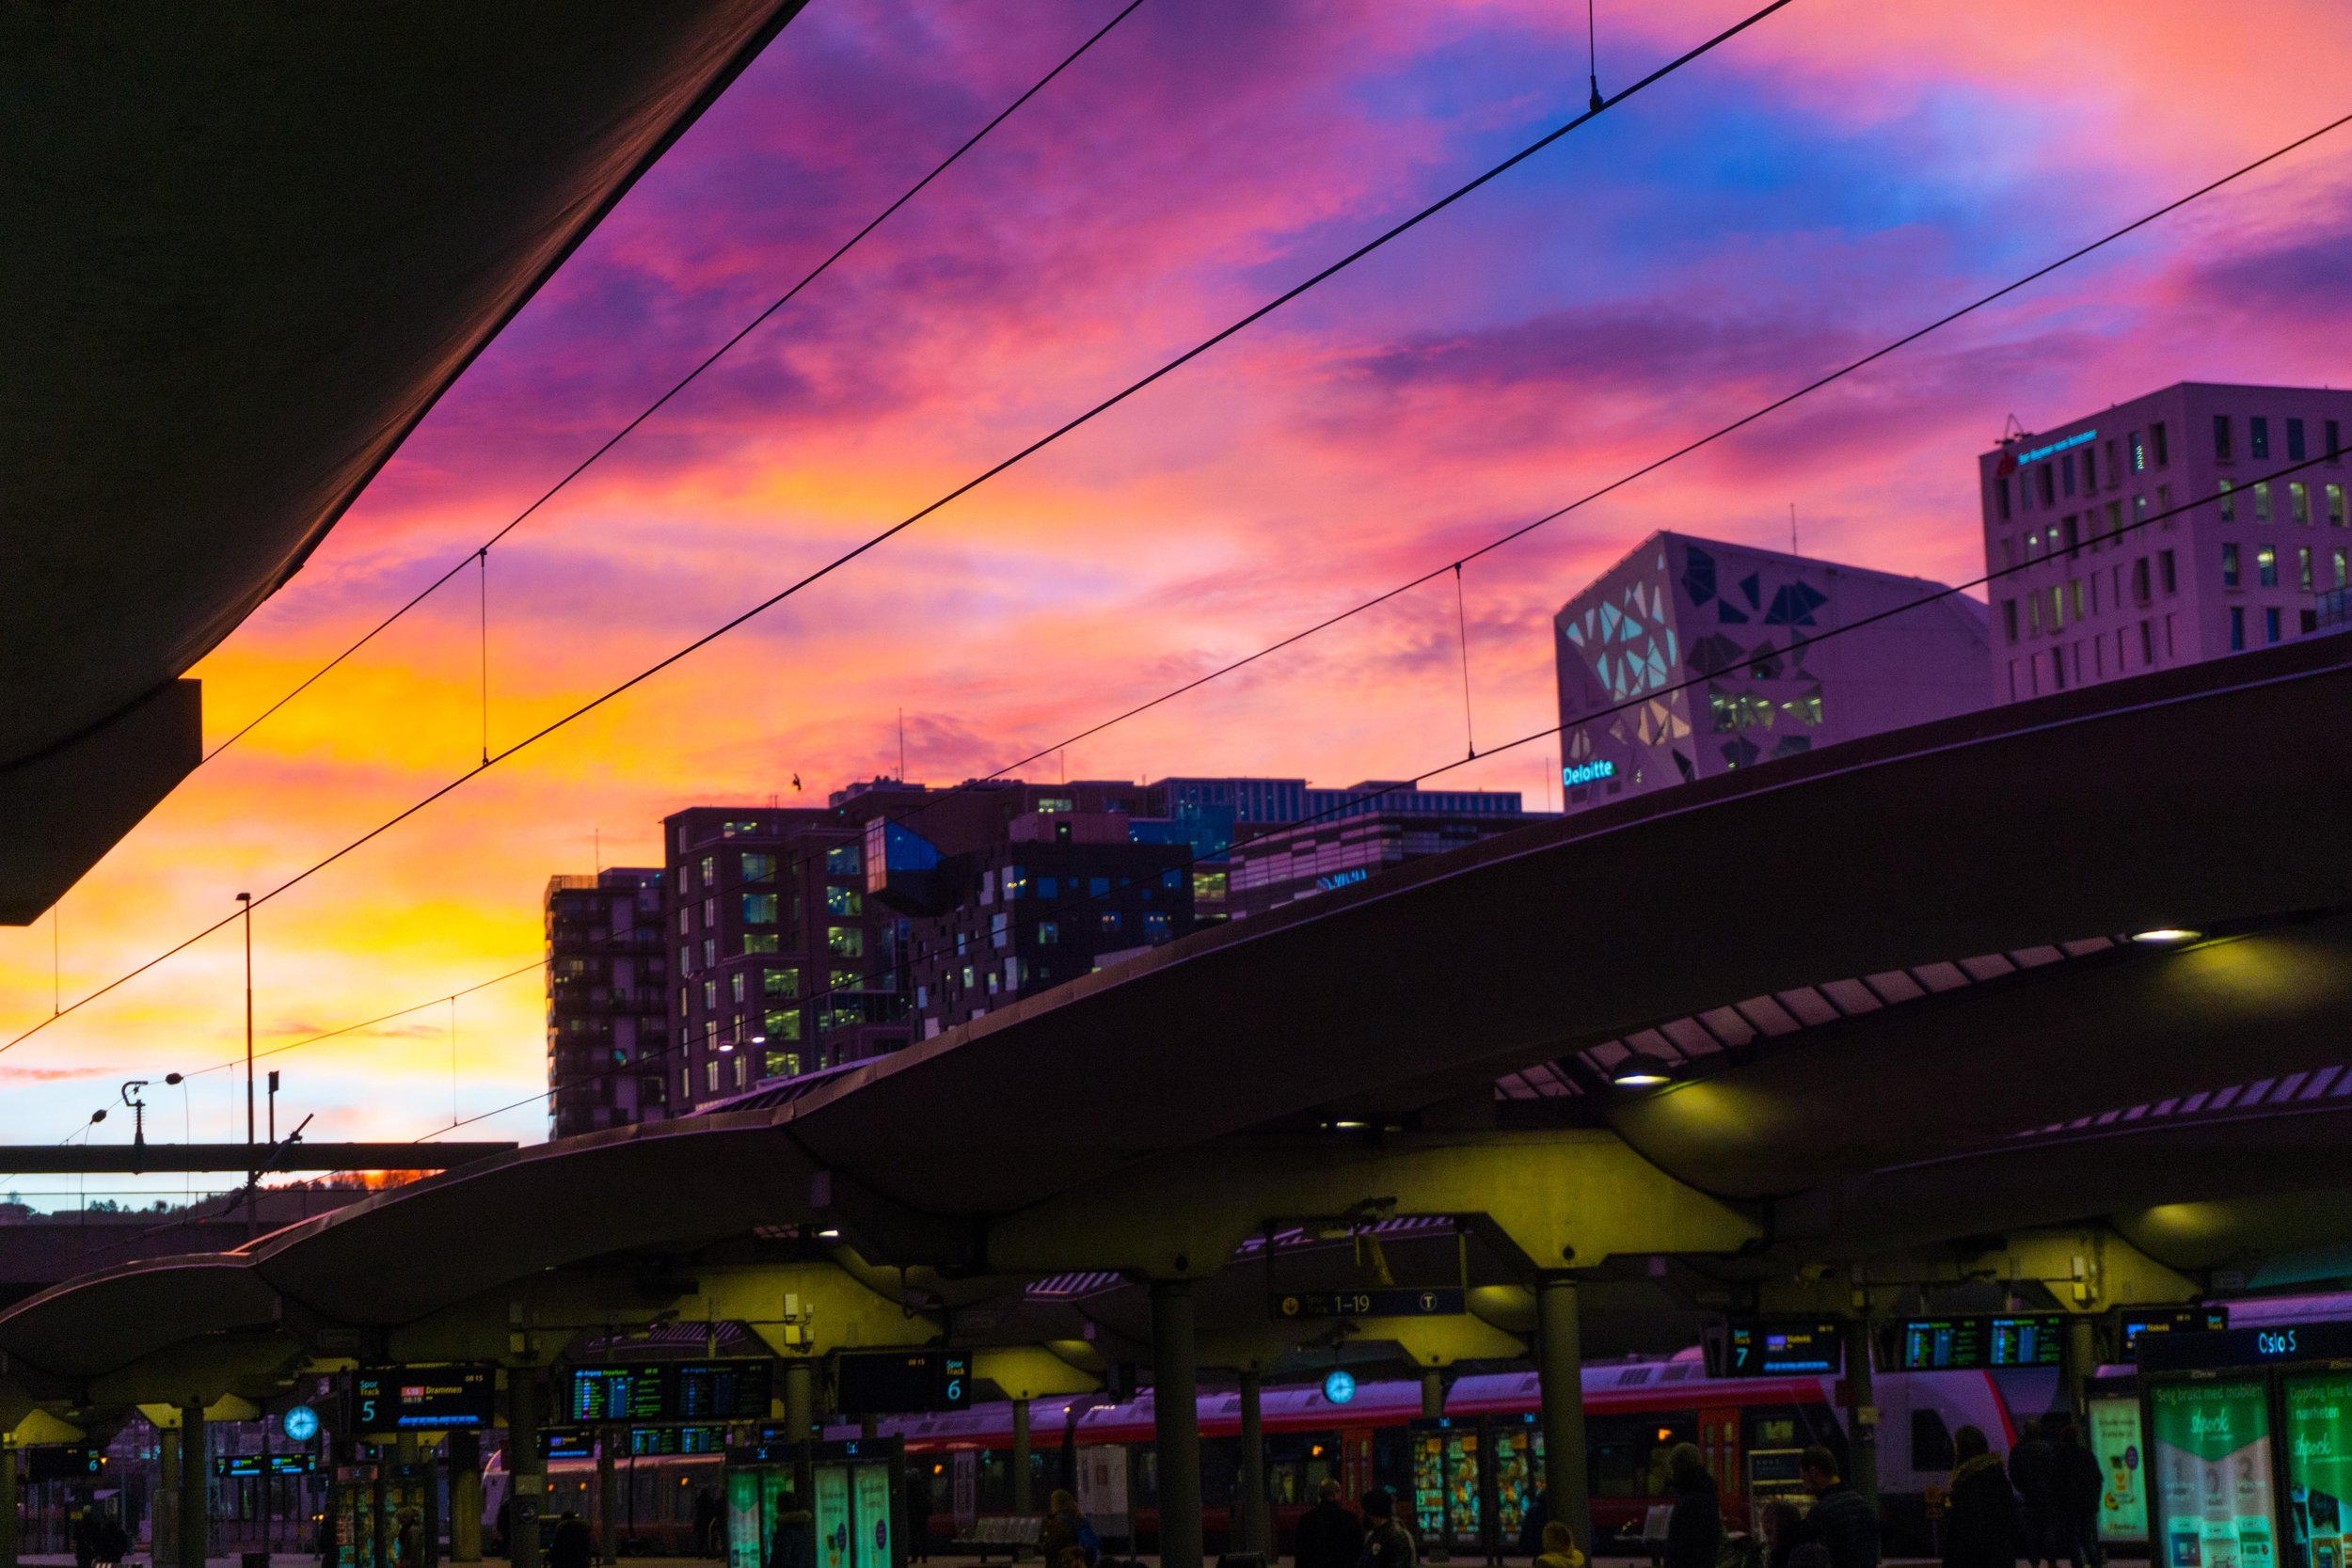 Oslo Central Station at sunrise.  At 9 in the morning.